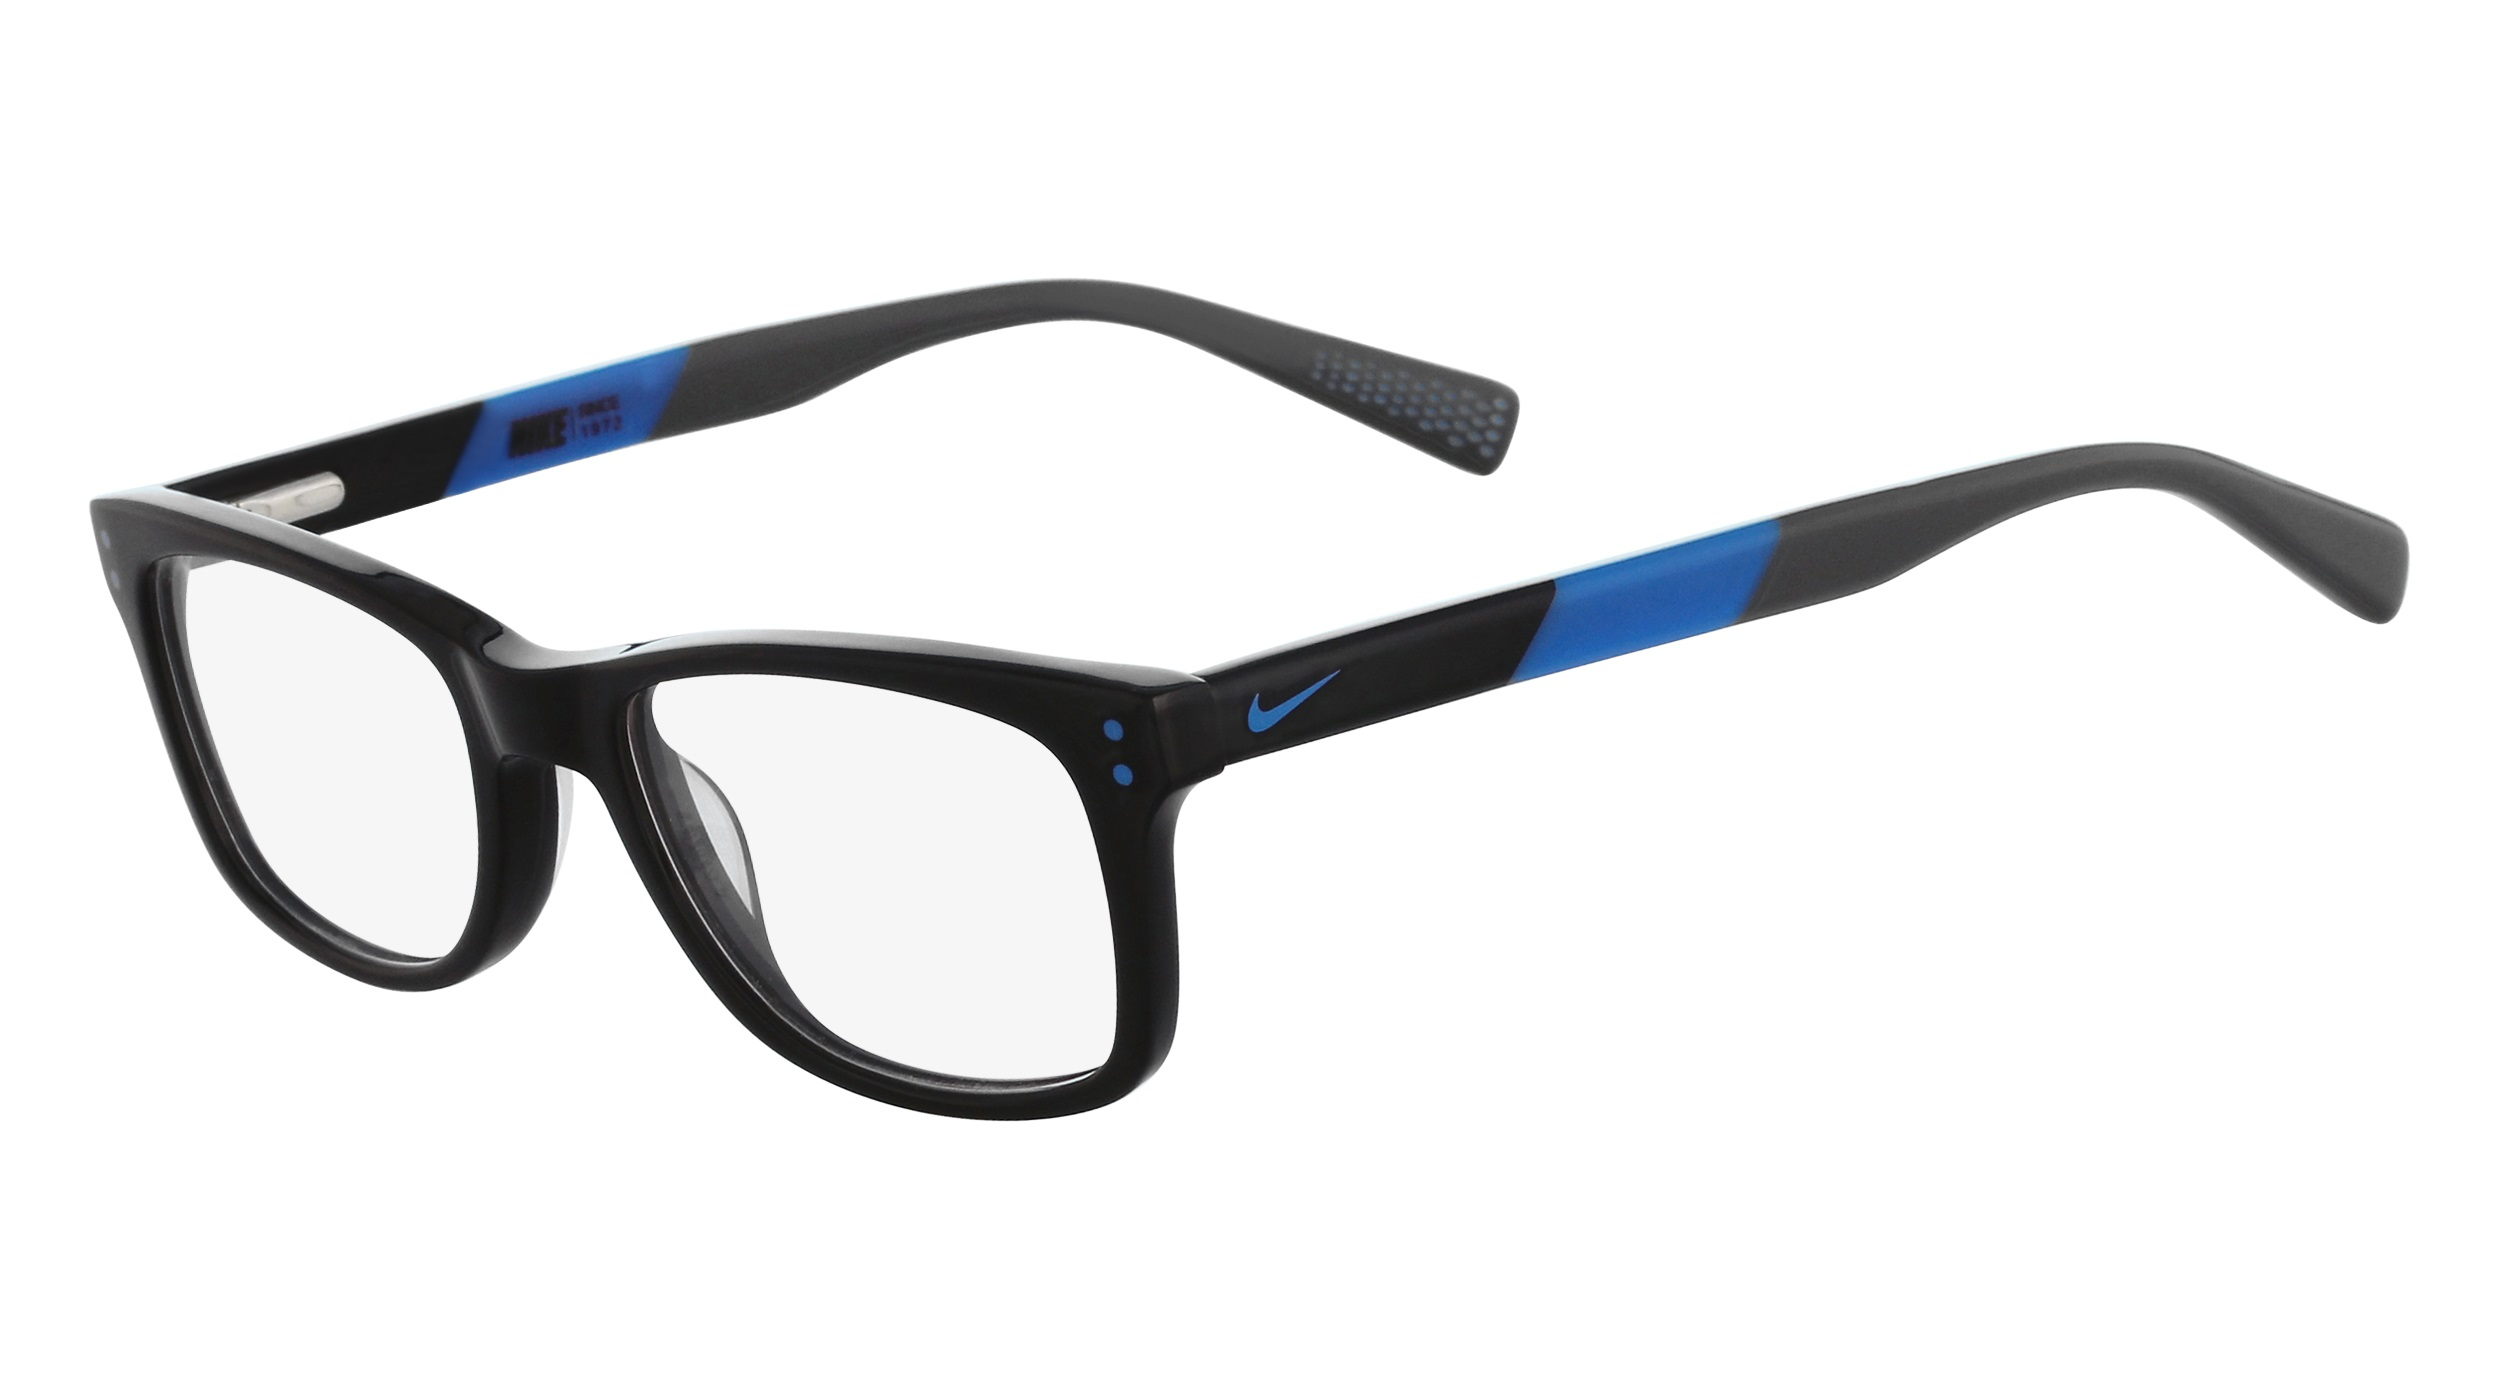 e002253bbc9 Prescription Eye Glasses